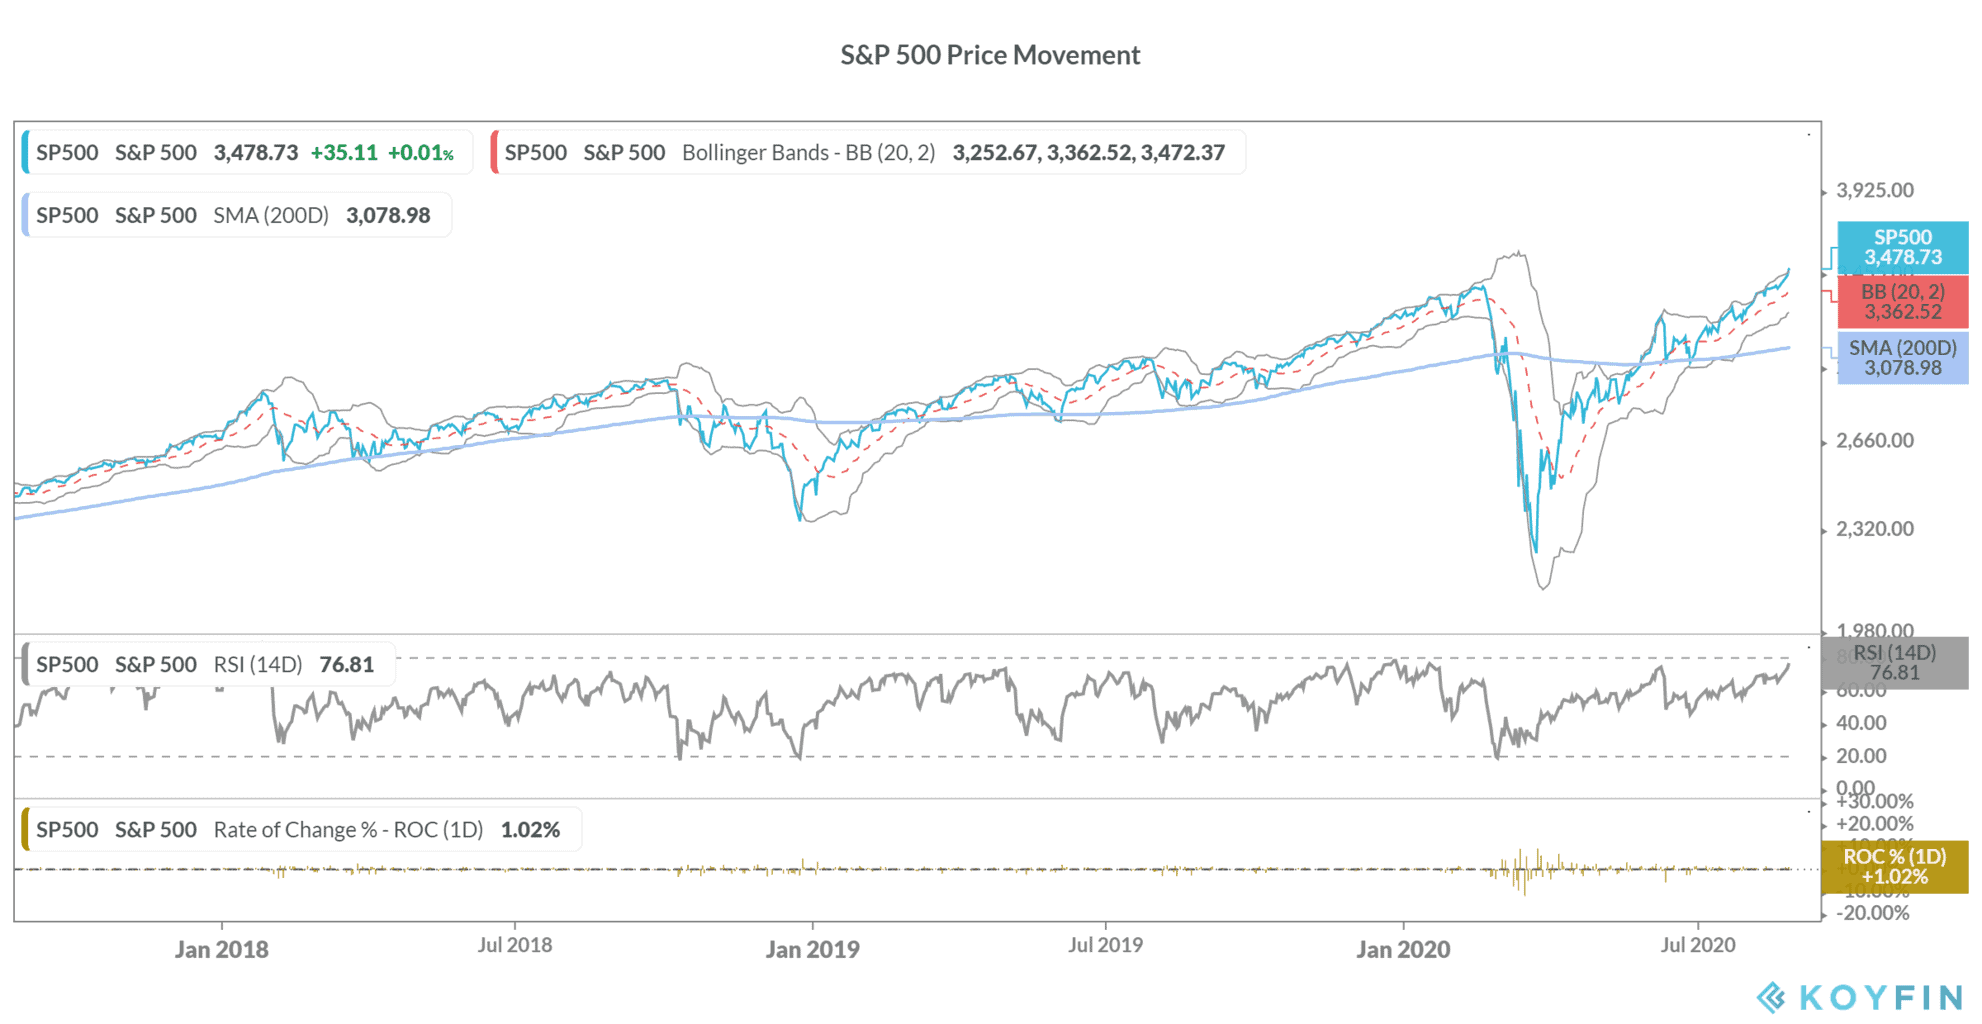 S&P 500 record highs